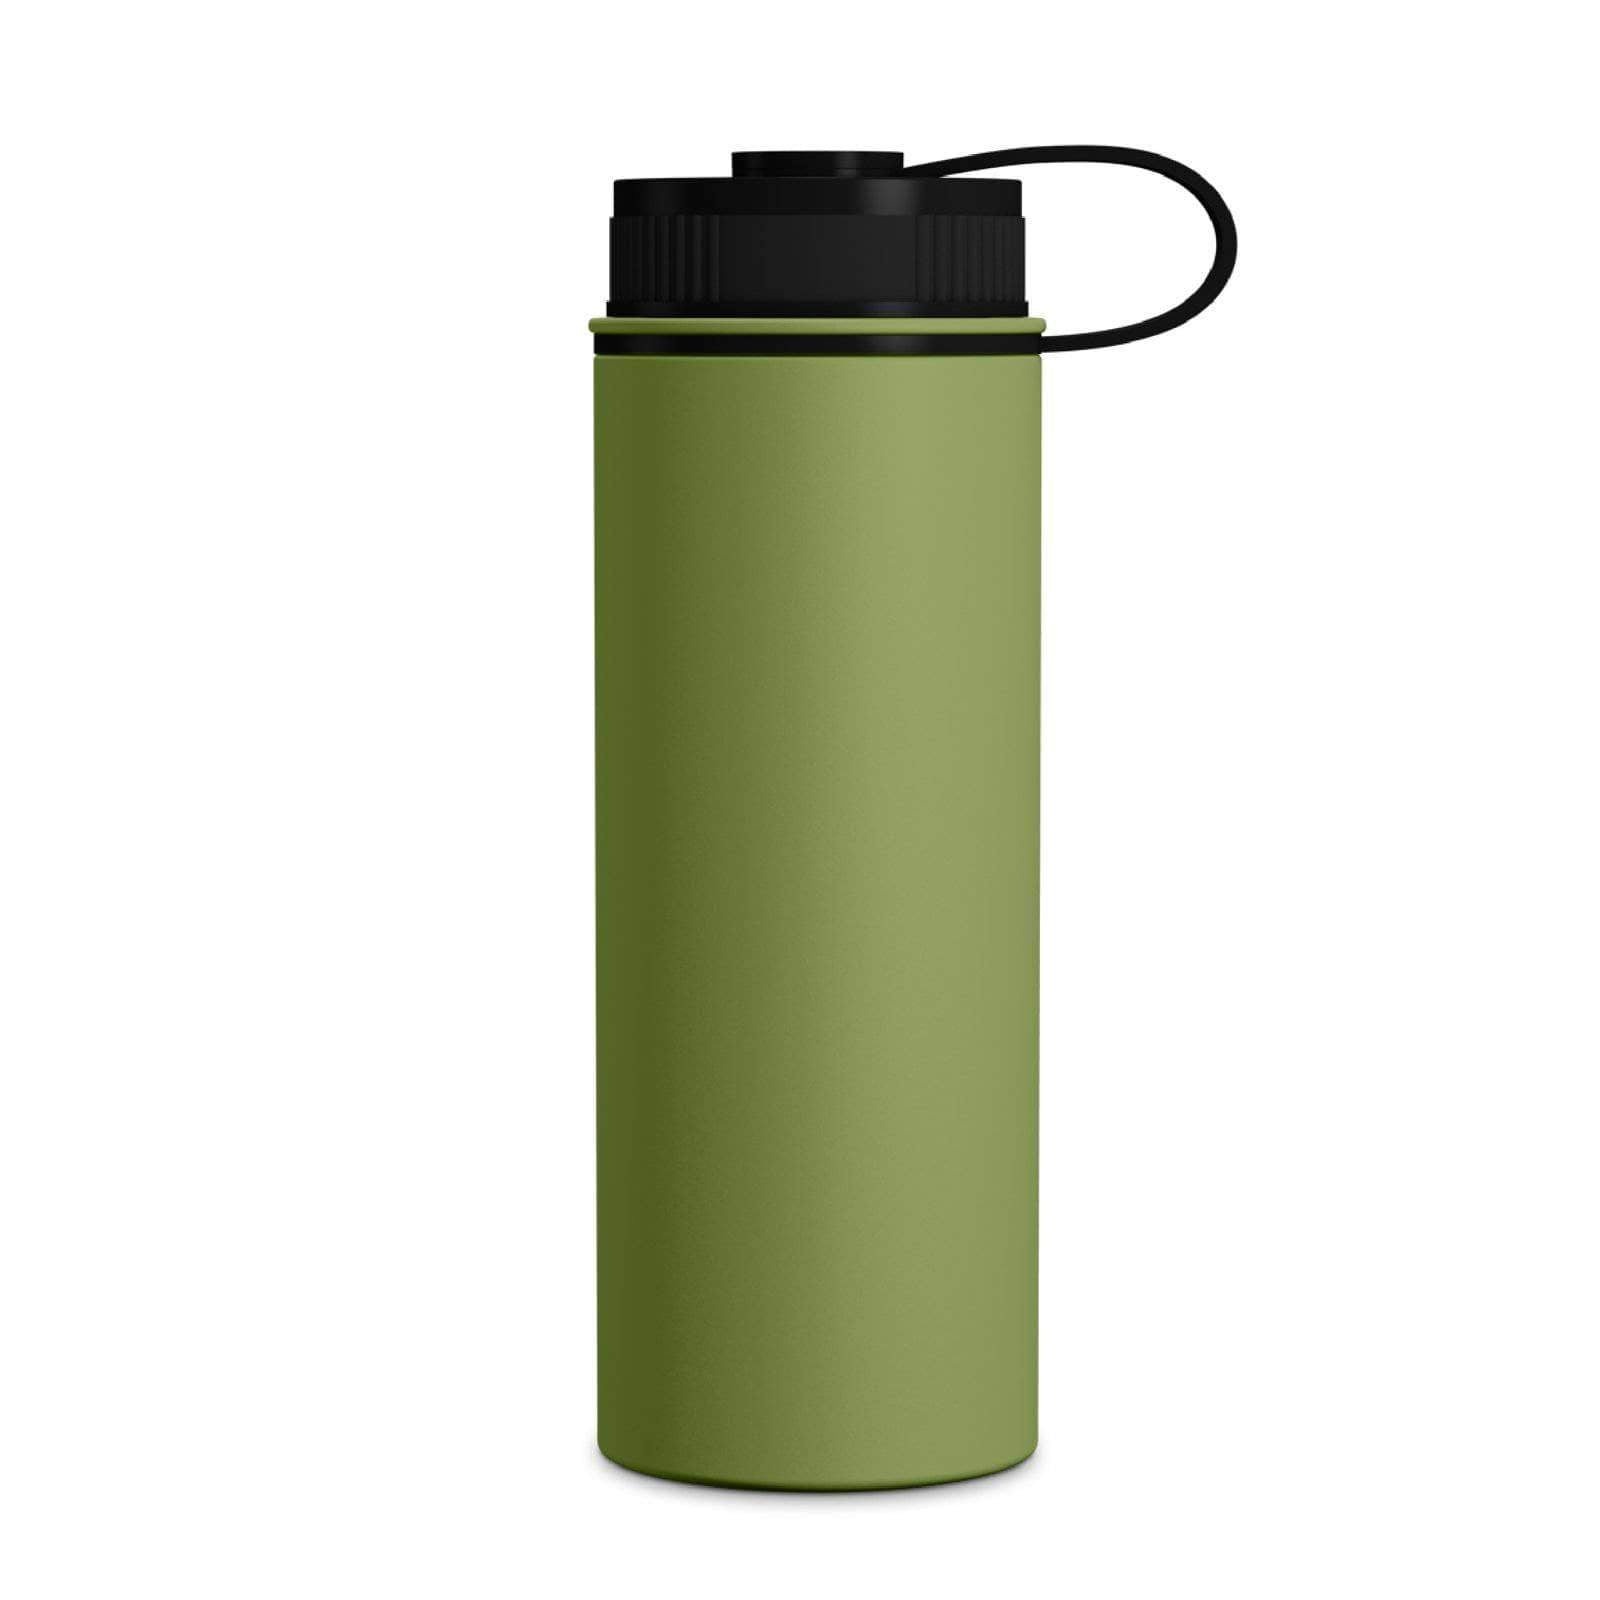 Geo Bottles Light Green 18oz Double Wall Vacuum Insulated Flask, Wide Mouth